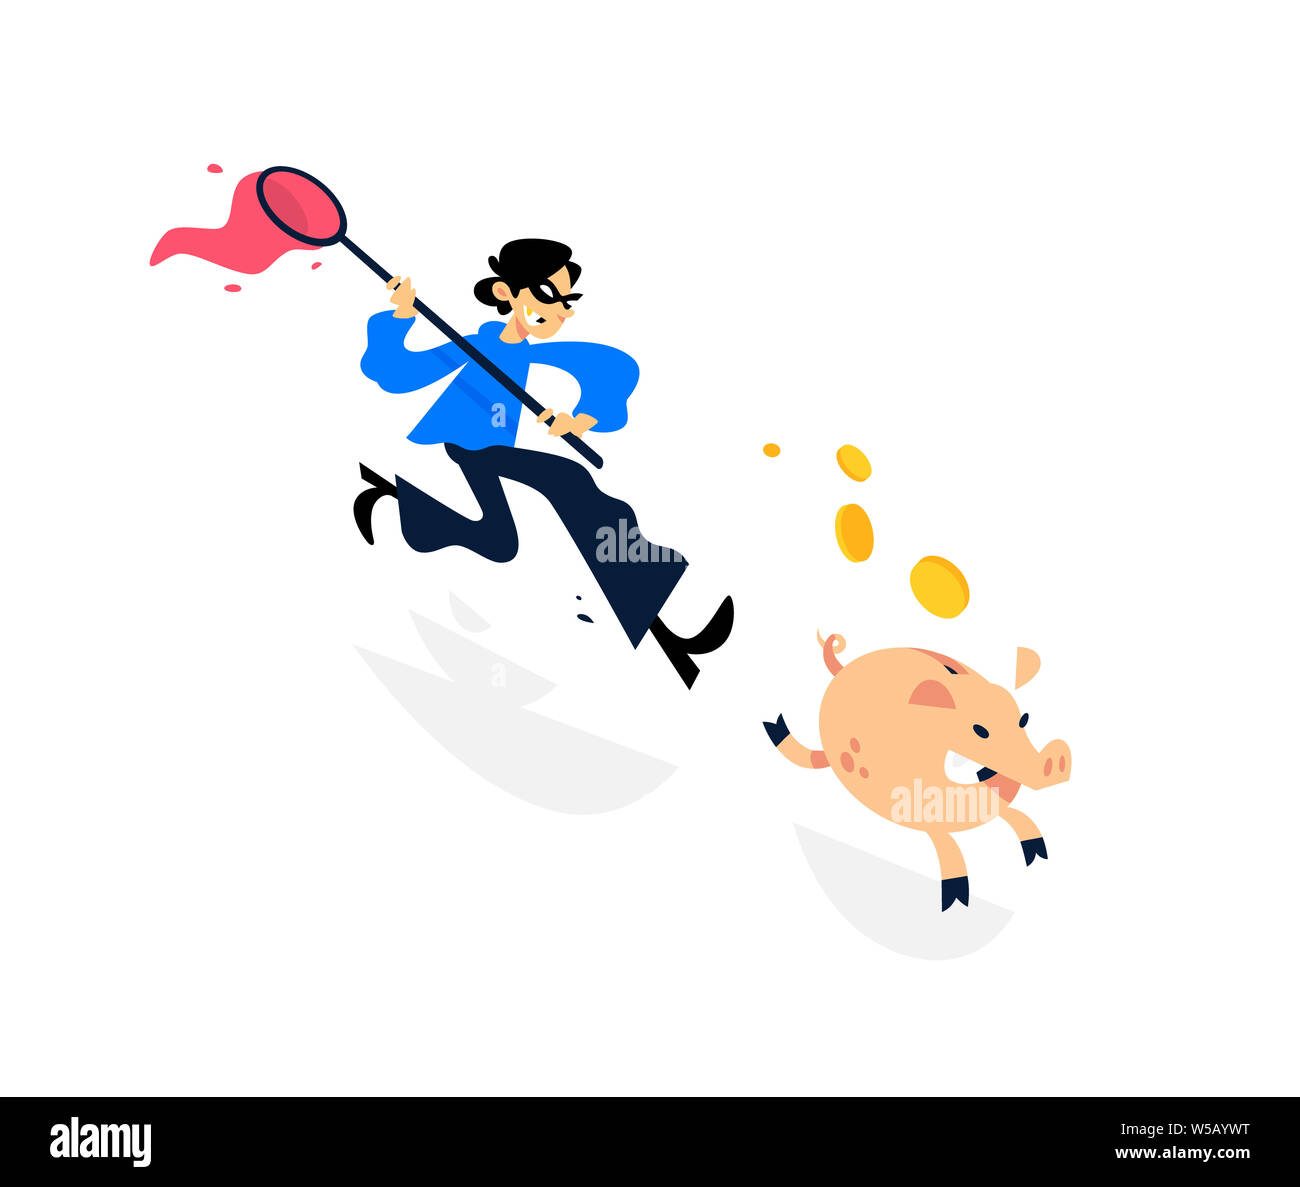 Illustration of a thief running after a piggy bank with a net. Vector illustration. Image is isolated on white background. A cartoon thief is trying t Stock Photo